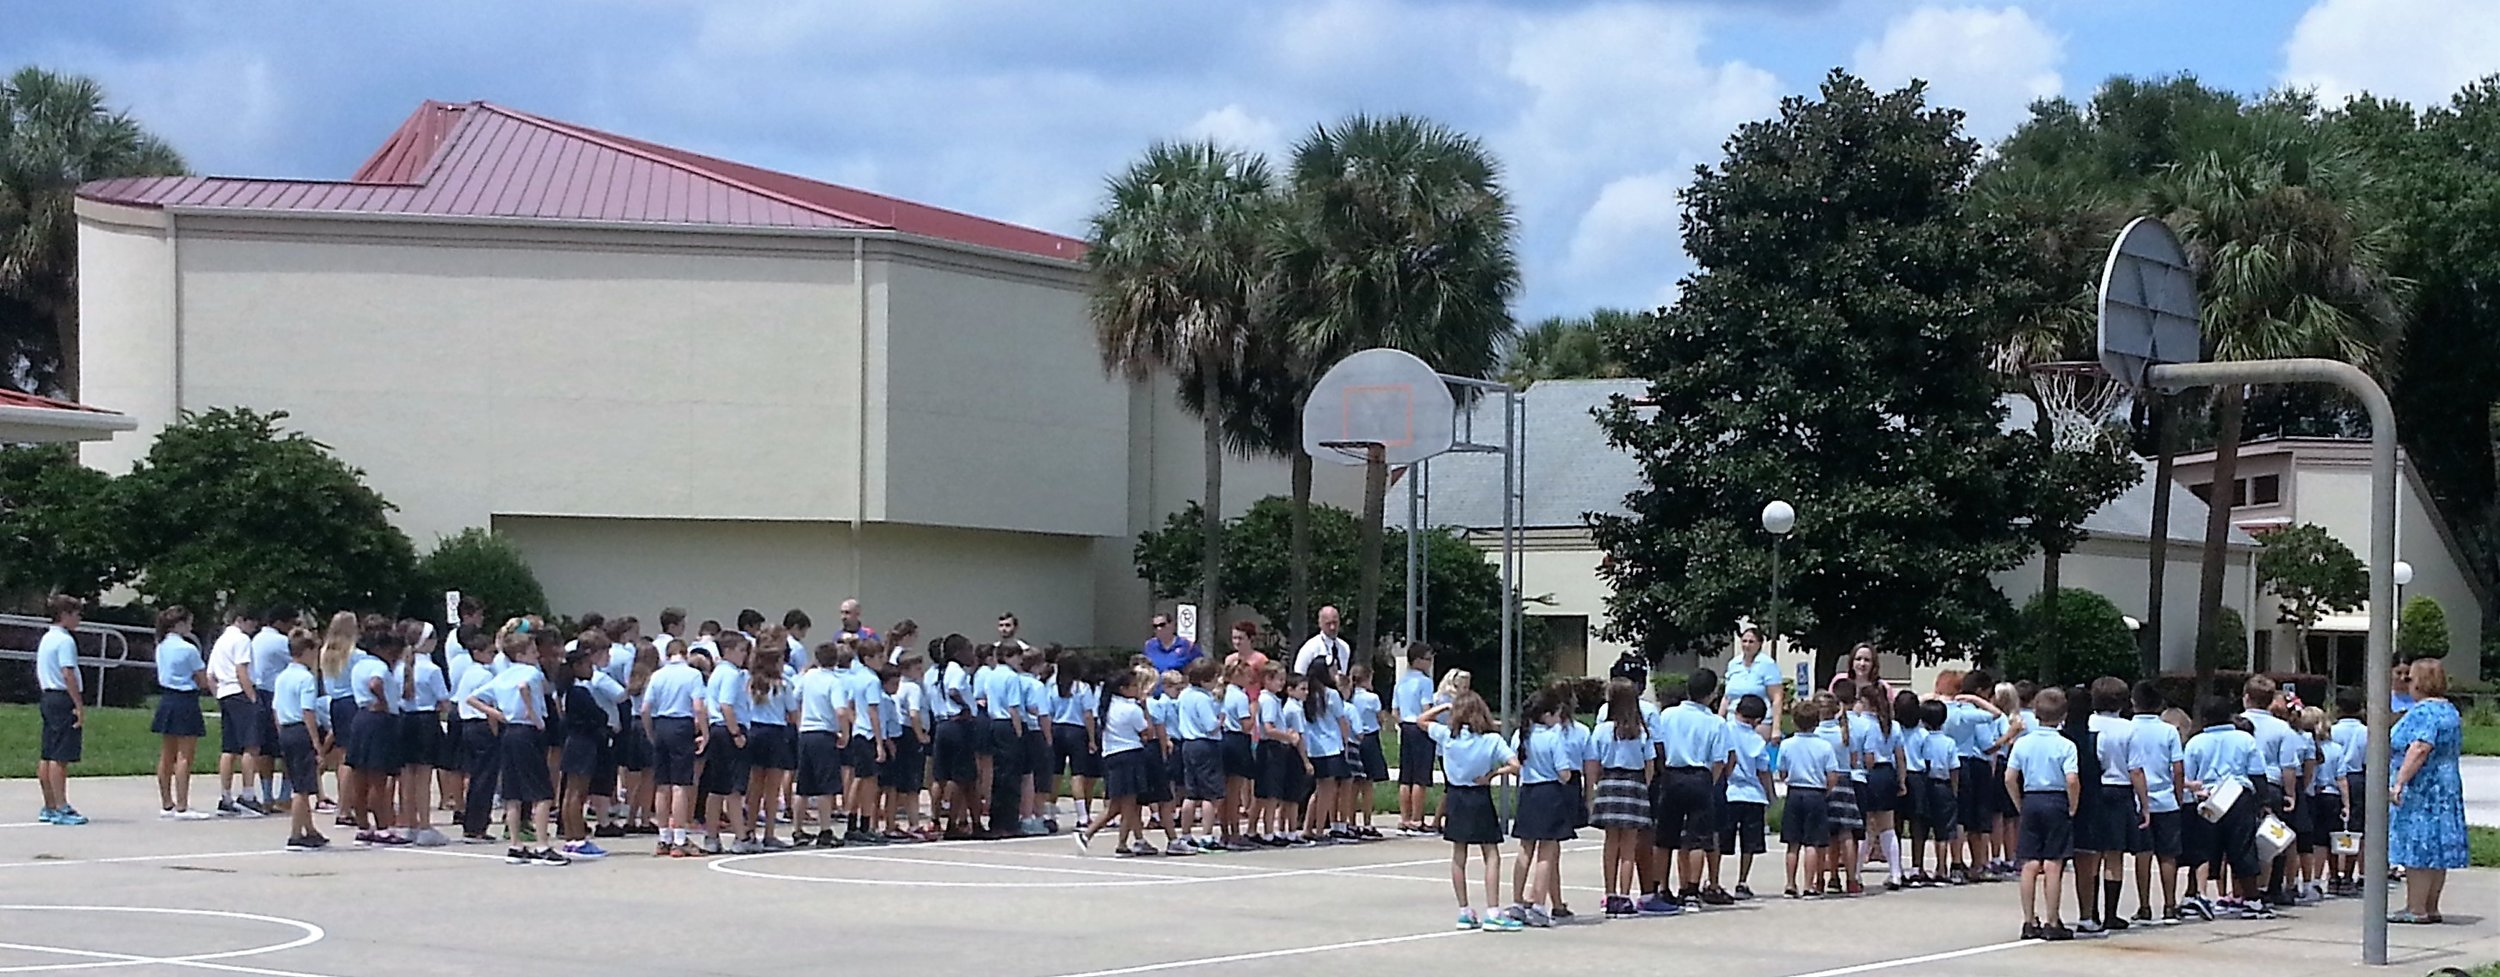 Students practice fire drills going to quickly and quietly to the outdoor basketball court.